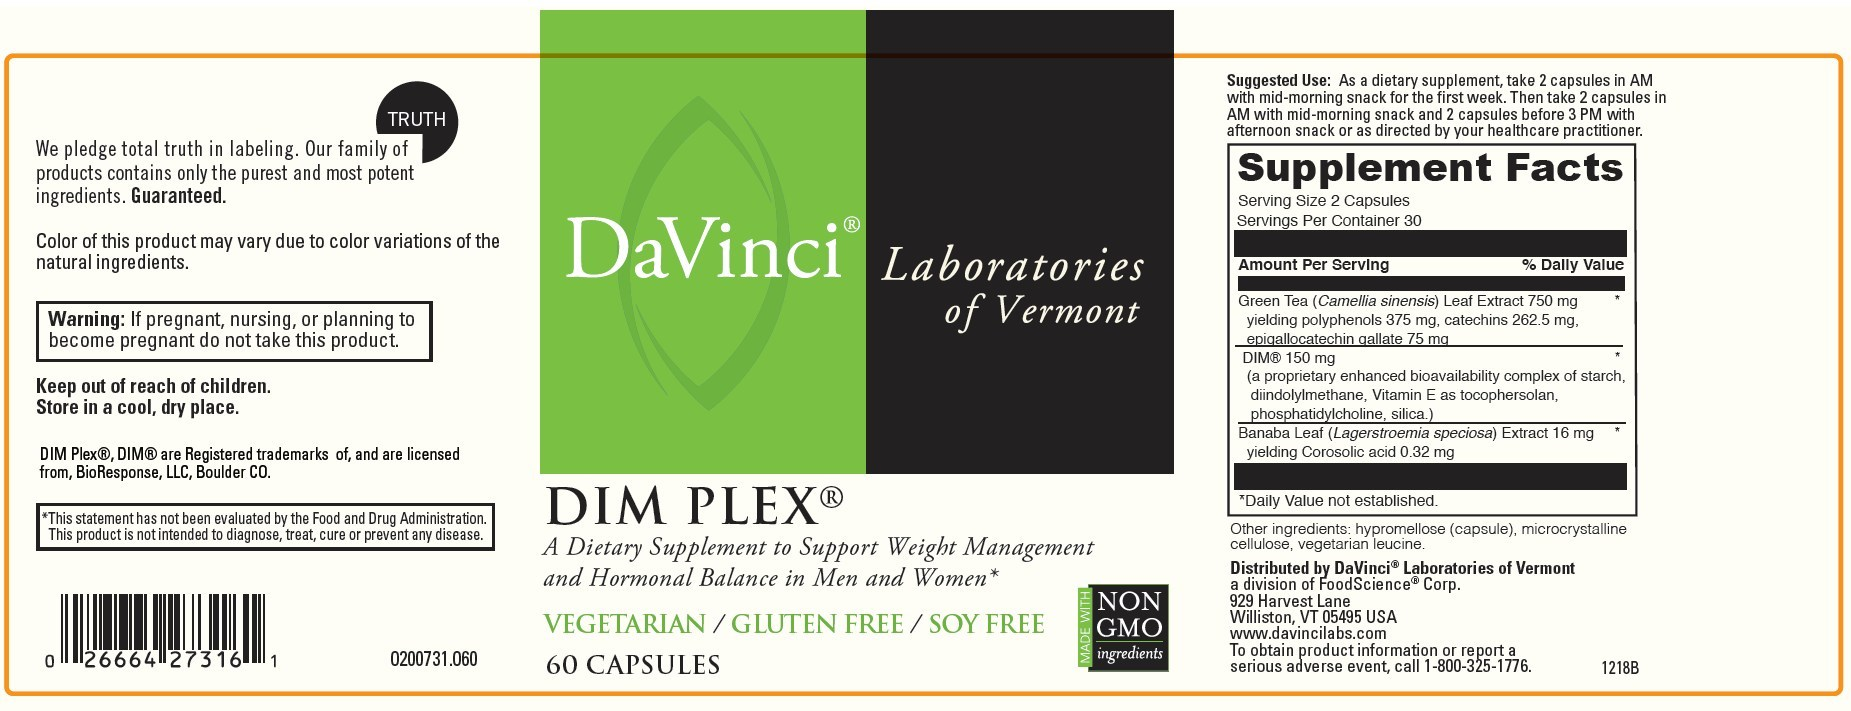 DaVinci Laboratories Issues Allergy Alert On Undeclared Fish